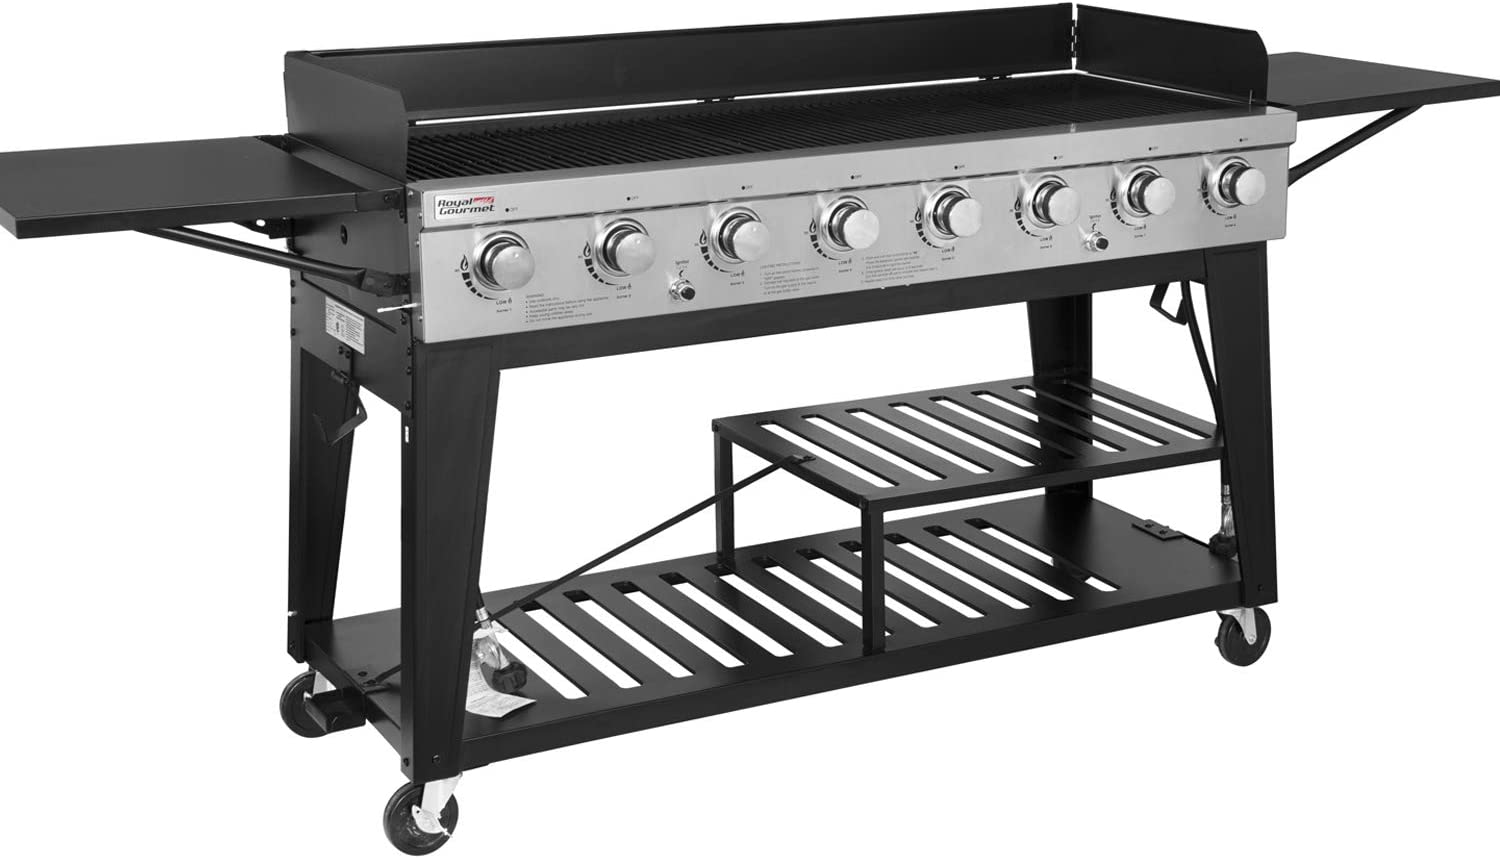 Royal Gourmet GB8000 8-Burner Liquid Propane Event Gas Grill review